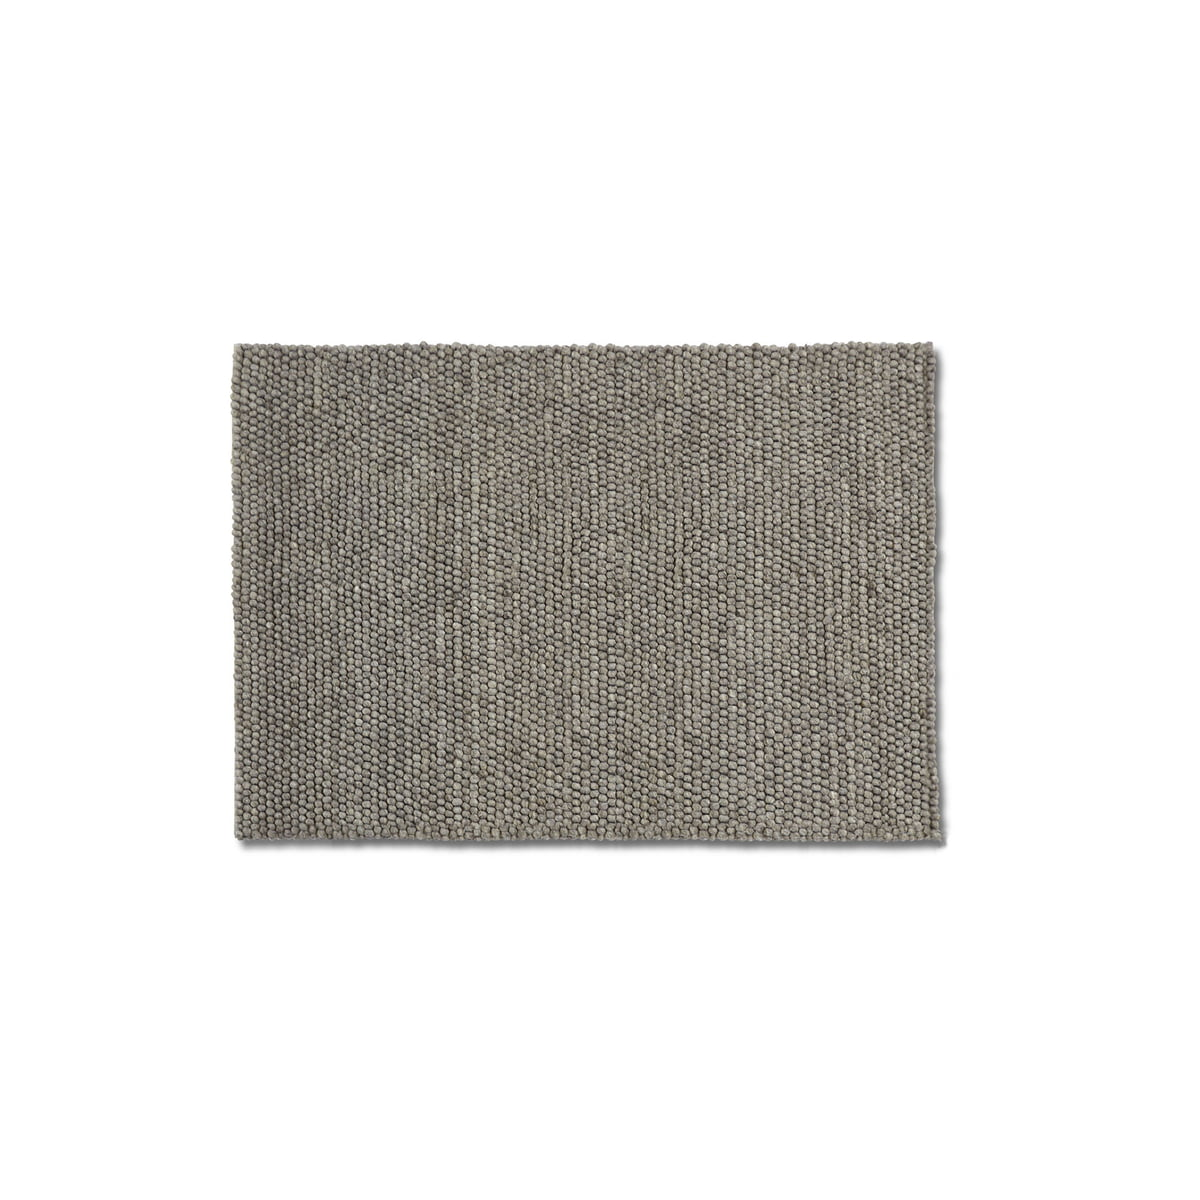 carpet grey. hay - peas carpet 80 x 140 cm, medium grey